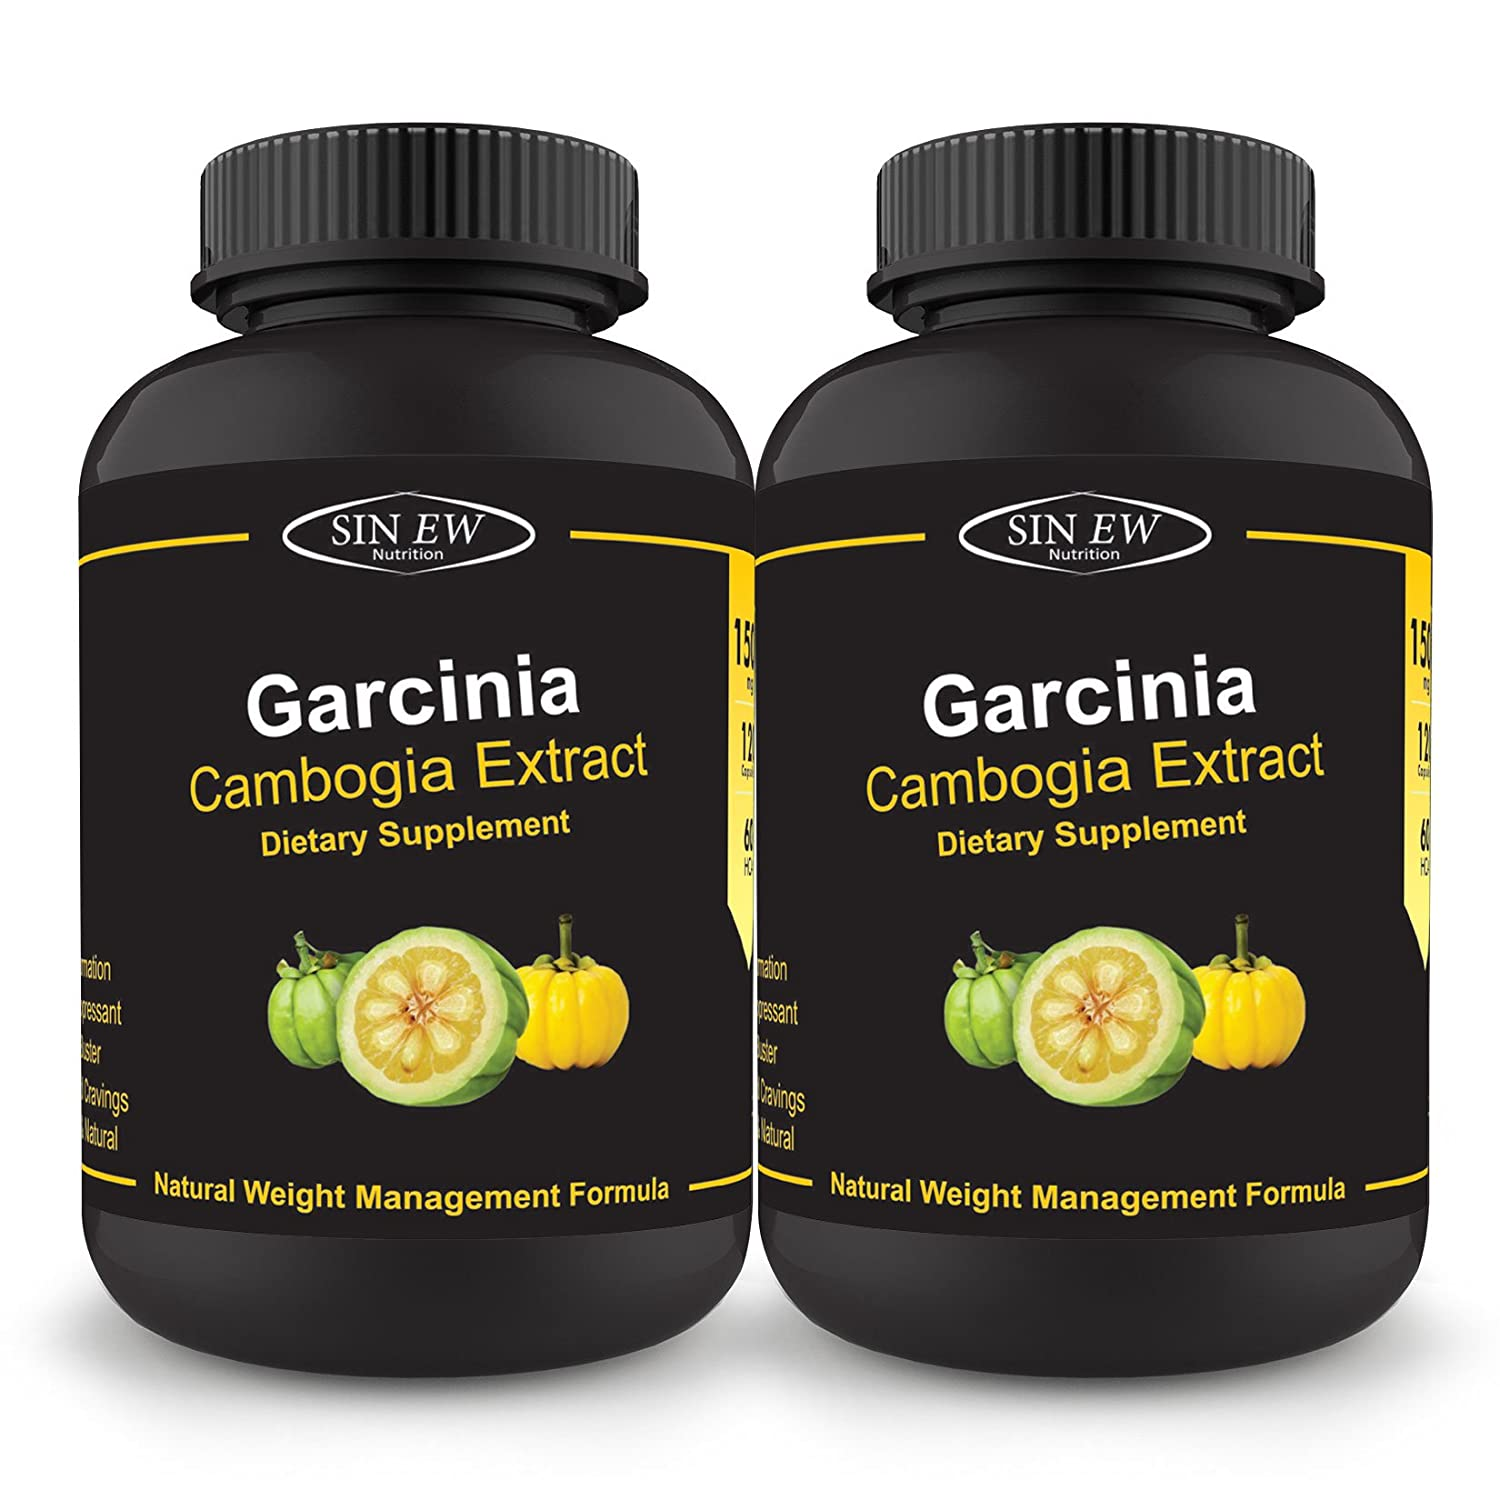 Sinew Nutrition Garcinia Cambogia Extract -(120 Capsules - Pack of 2) 1500 mg Per Serving, 100 % Veg, Pure & Natural Weight Management & Appetite Suppressant Supplement